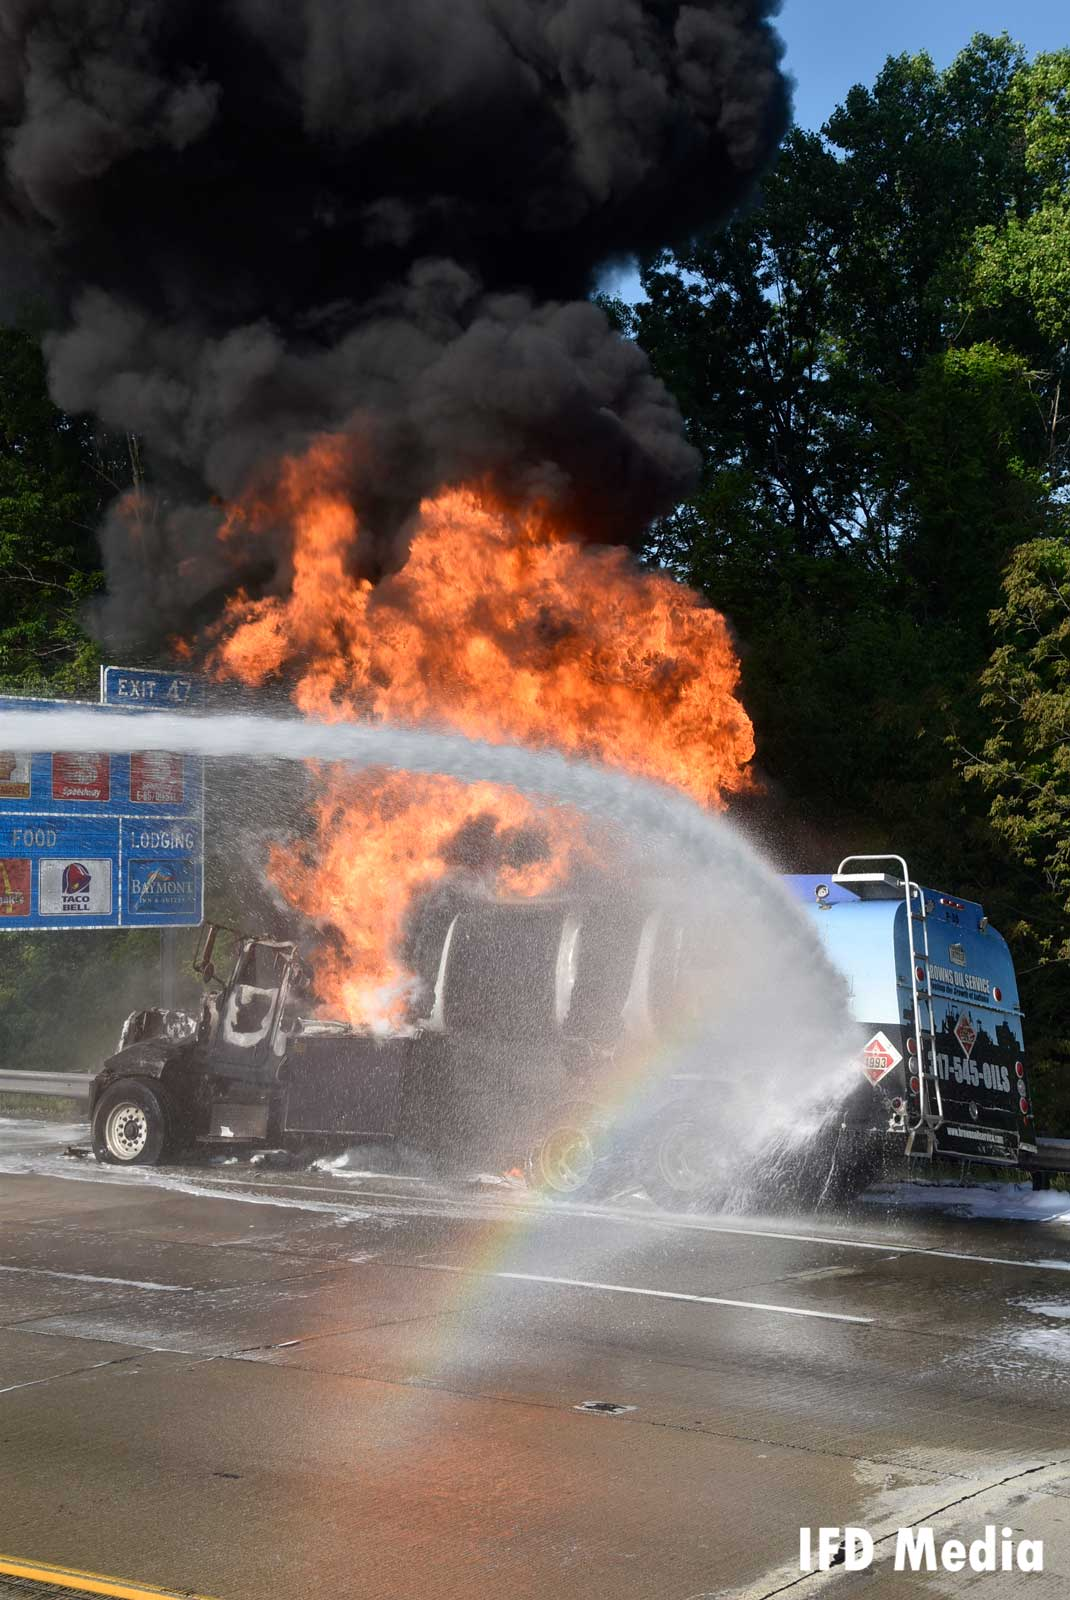 Water stream trained on burning truck